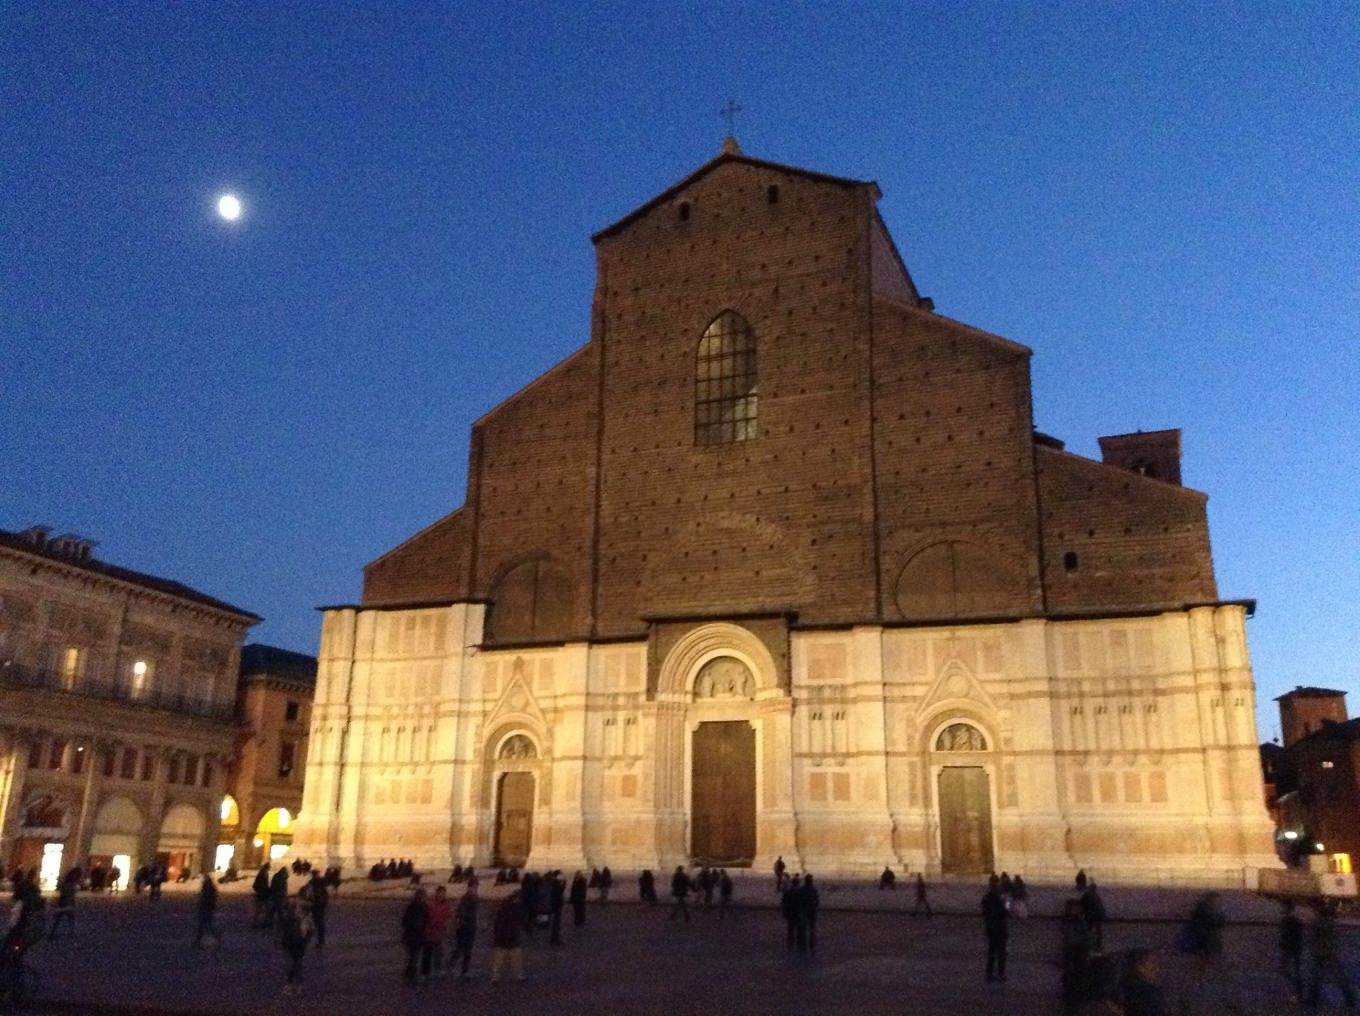 San Petronio by night